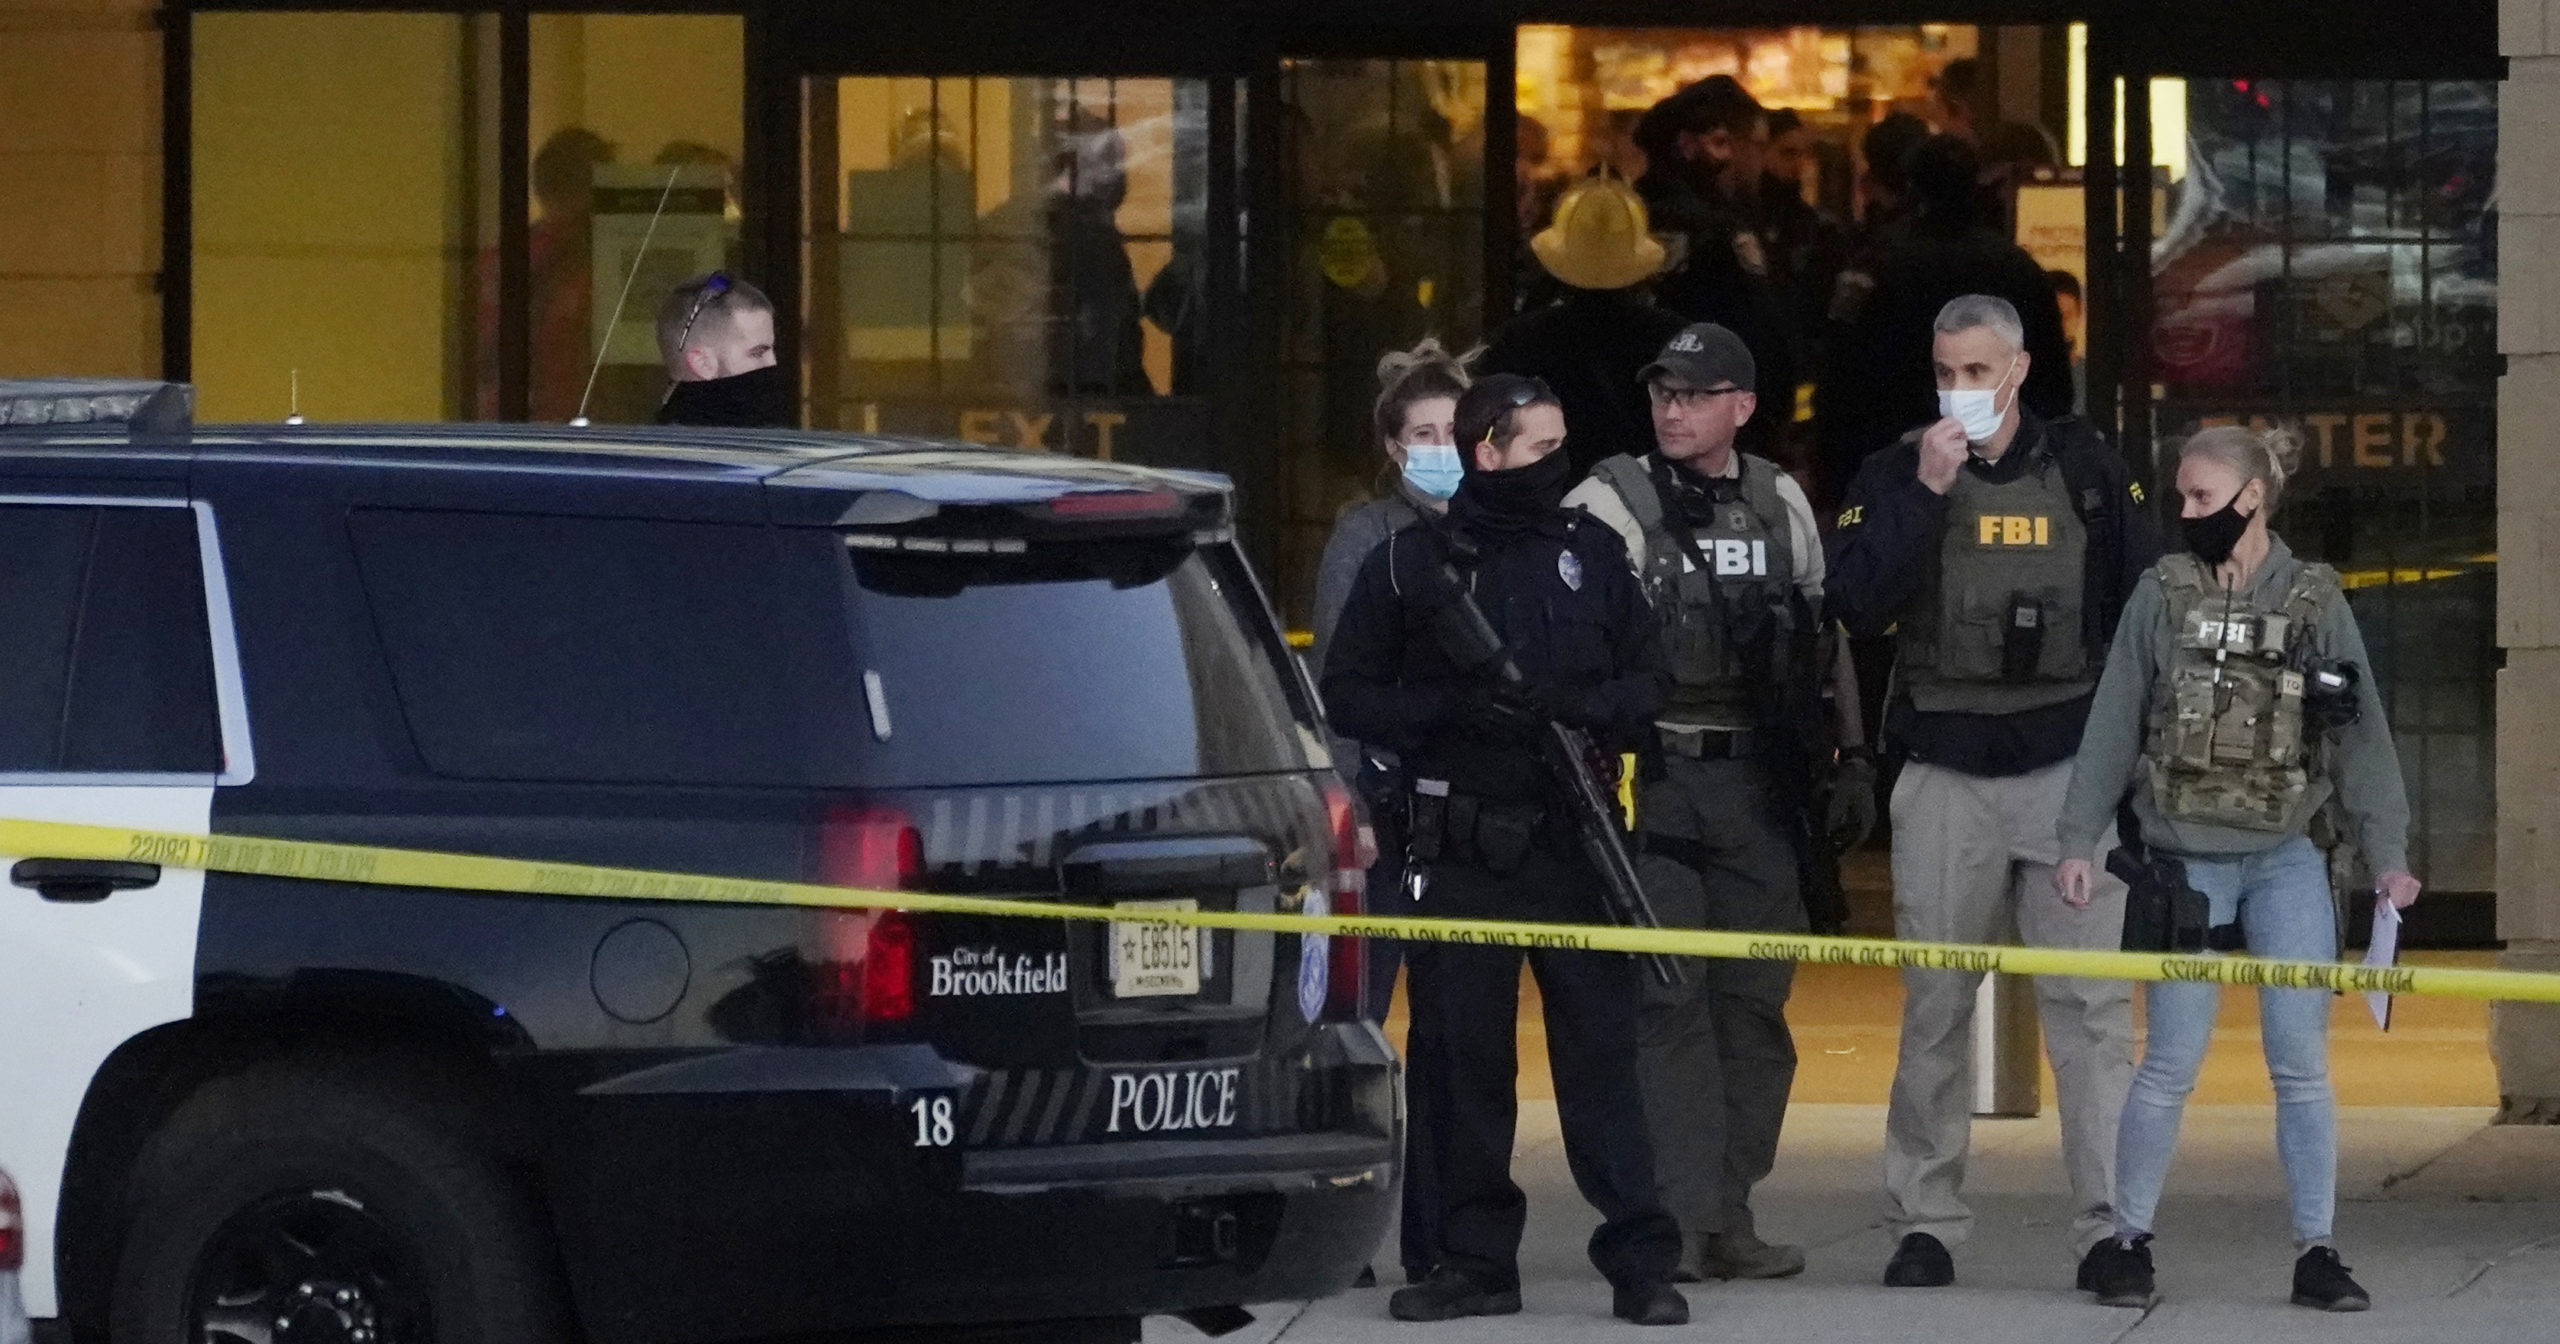 FBI officials and police stand outside the Mayfair Mall after a shooting on Nov. 20, 2020, in Wauwatosa, Wisconsin.